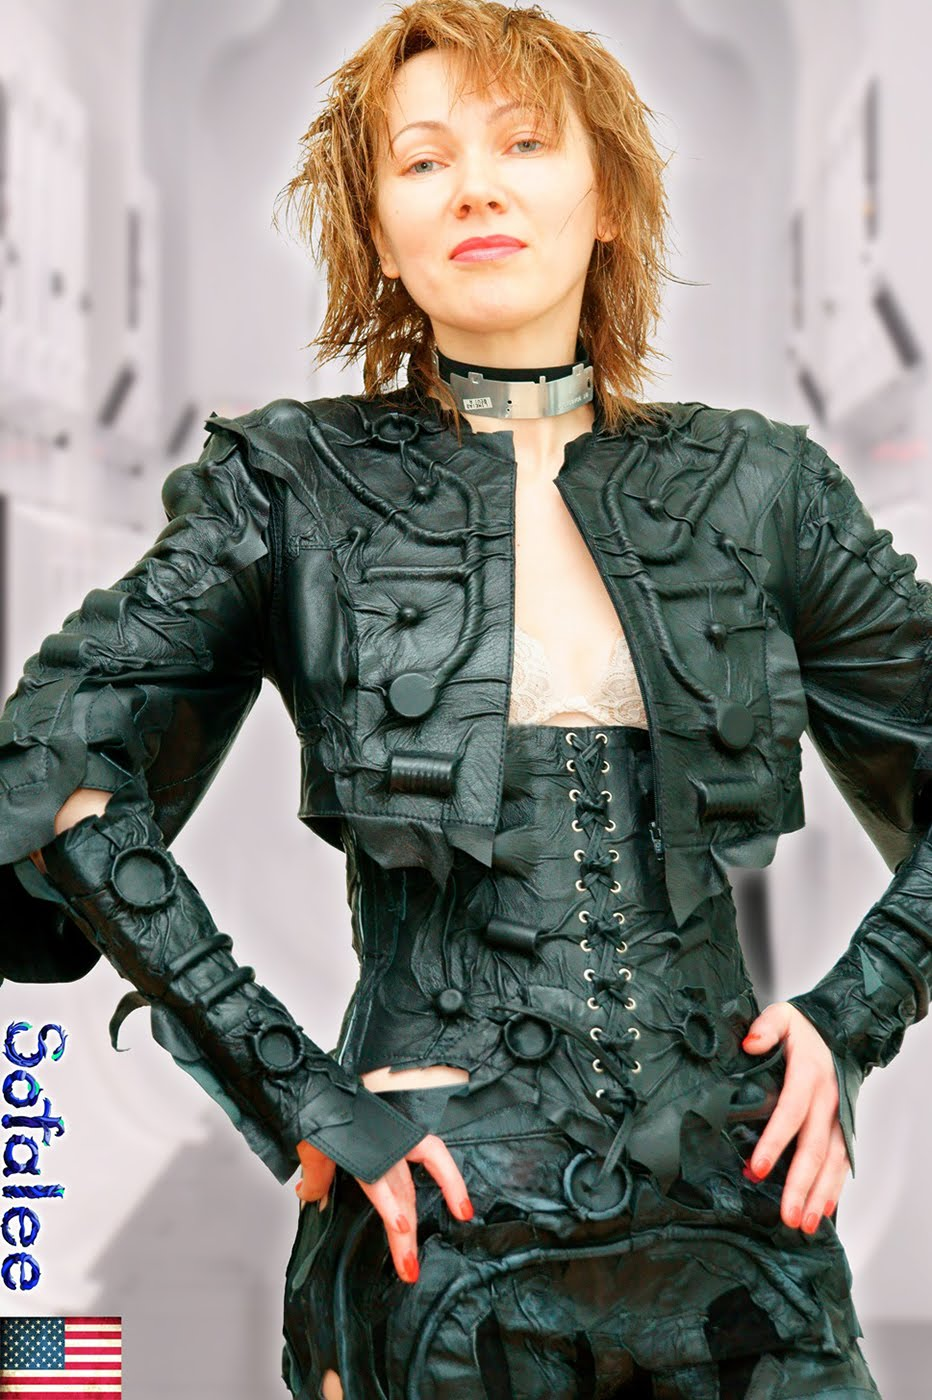 https://sites.google.com/a/sofalee.com/sofalee-genuine-leather-jackets/leather-jackets/no222-corset-bolero-of-genuine-black-leather-with-lacing/for%20women%20super%20jacket%20handcrafted%20genuine%20leather%20color%20black.jpg